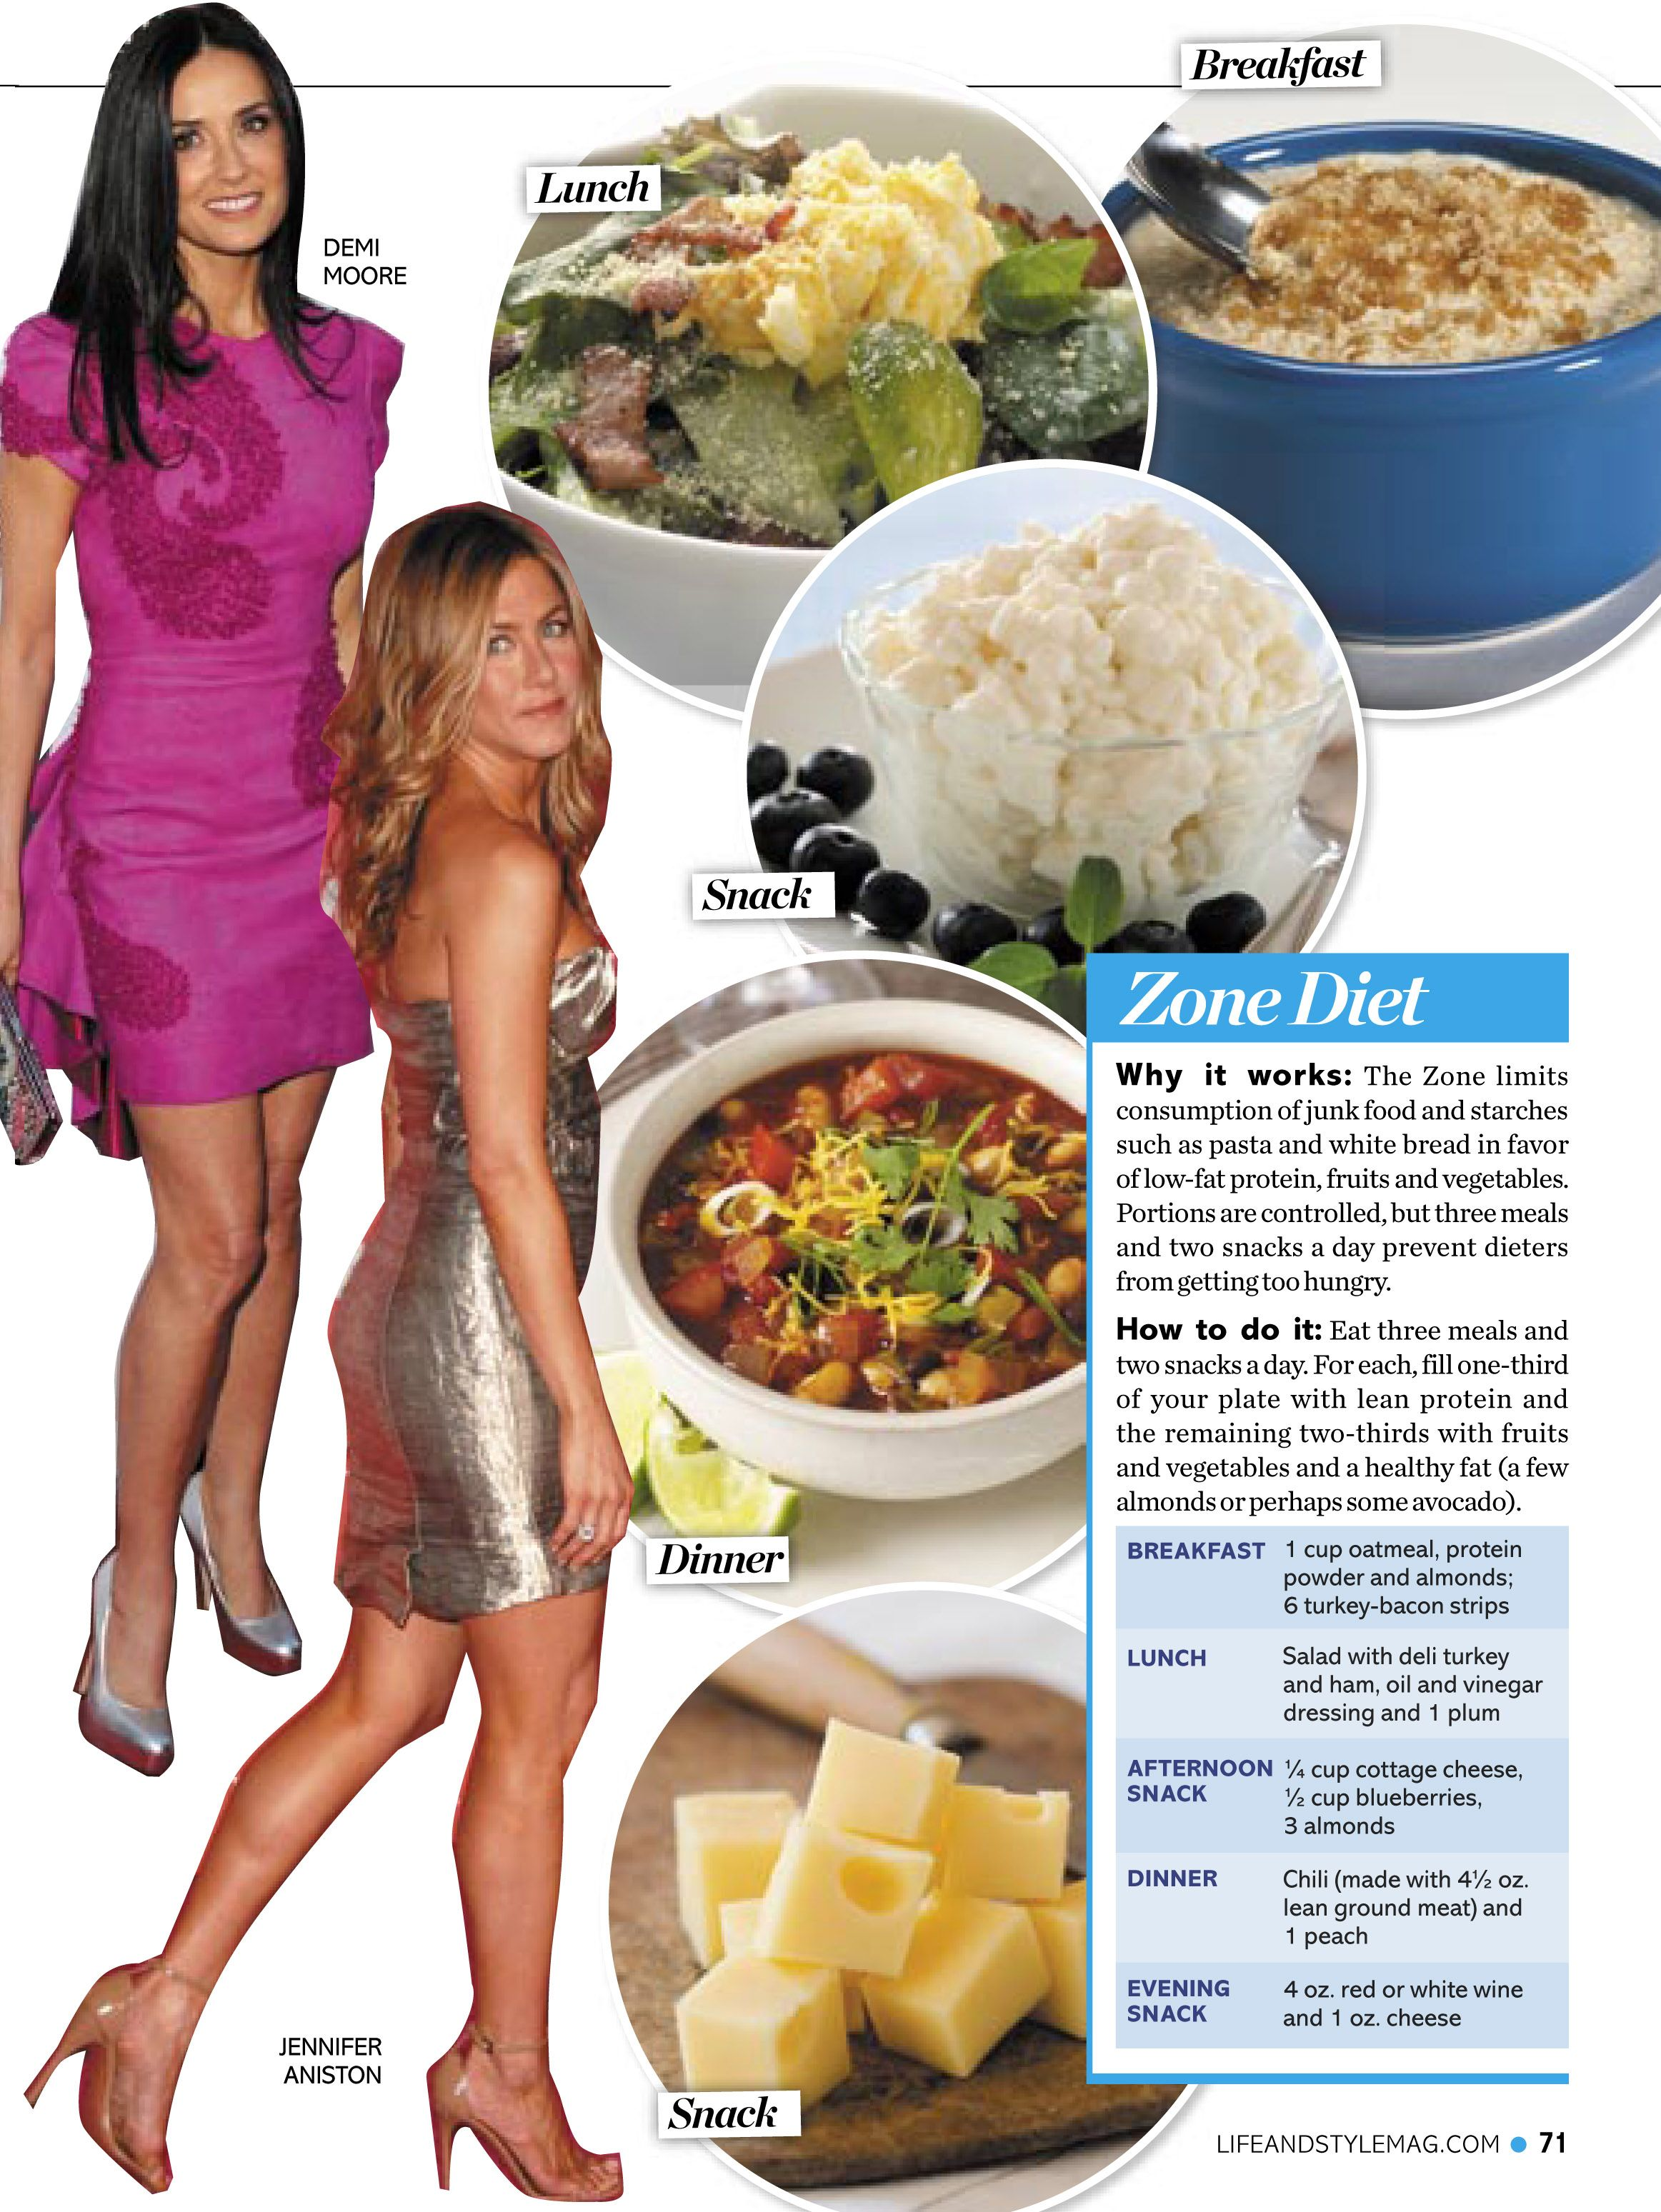 Find This Pin And More On Celebrity Diets And Exercise The Mostmon And  Effective Movie Star Diet Plans For Losing Weight Fast